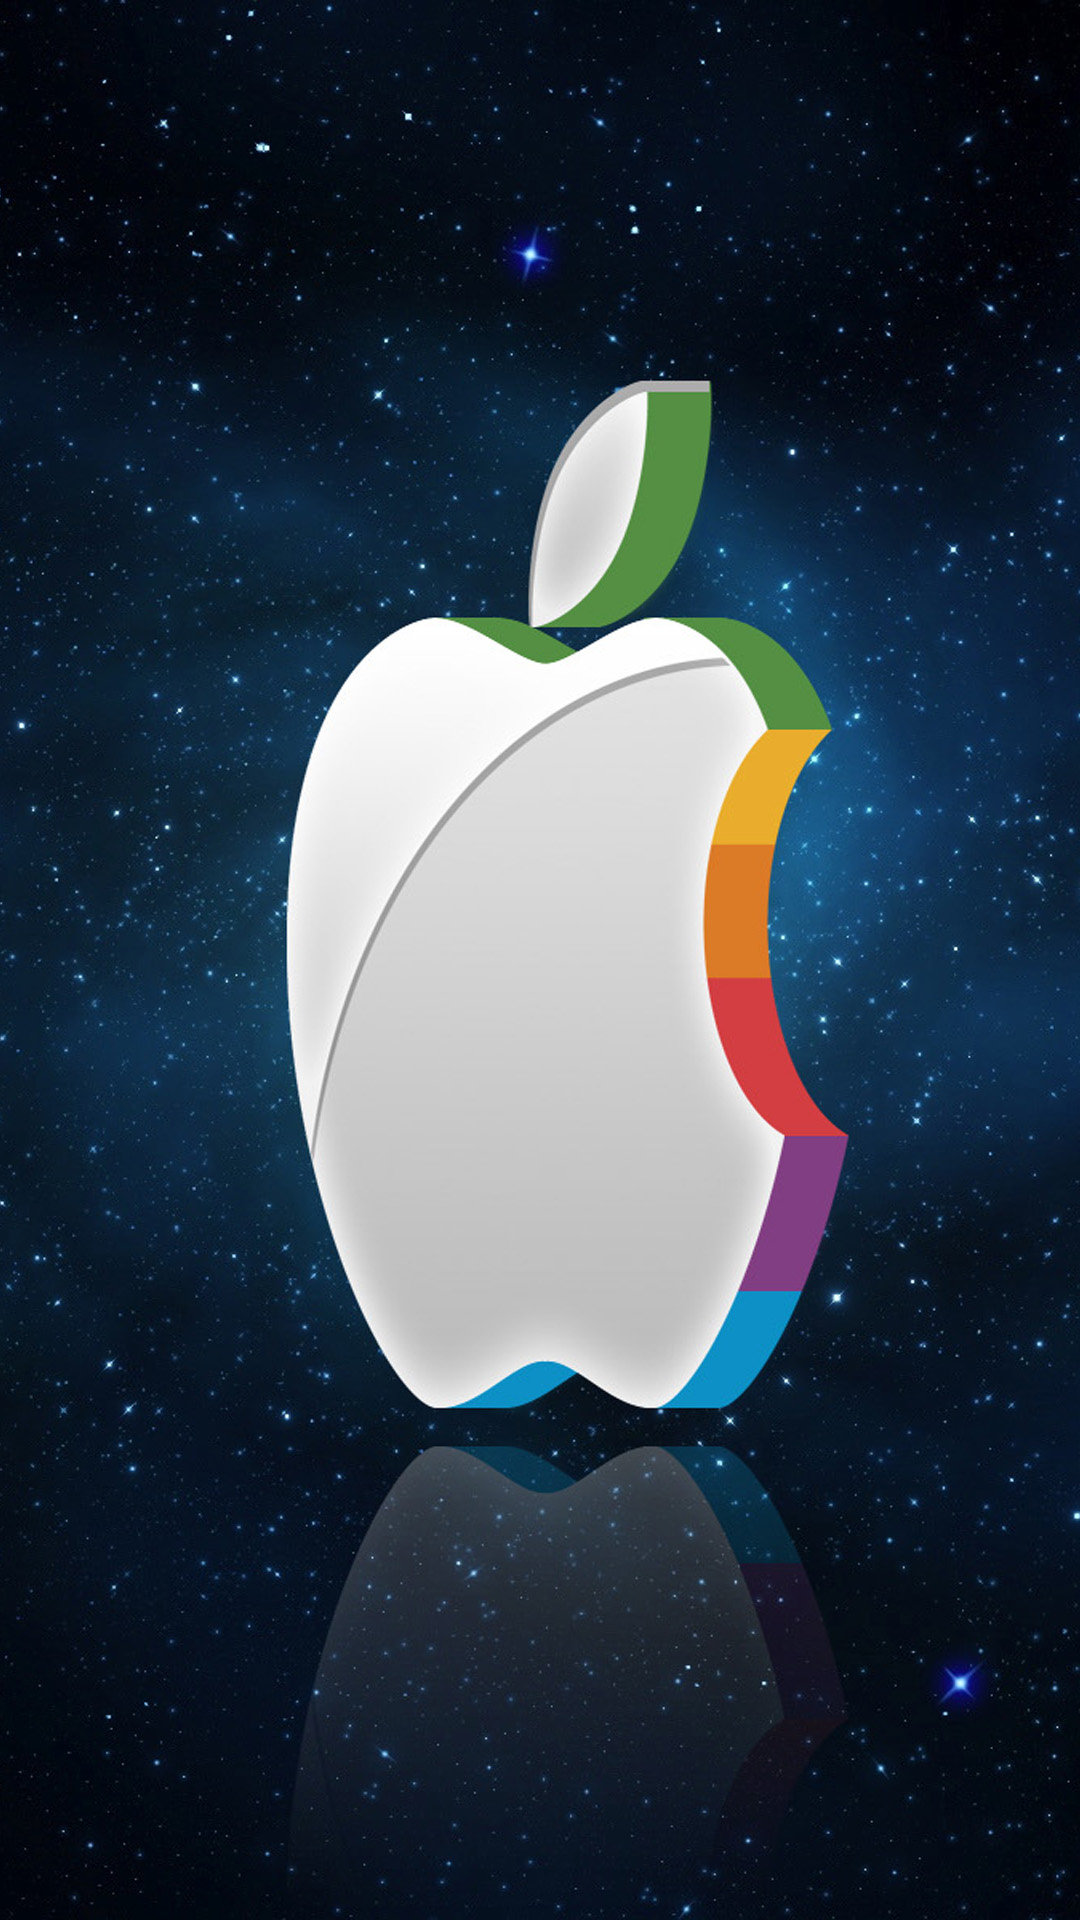 3d Apple Logo In Space Wallpapers For Iphone